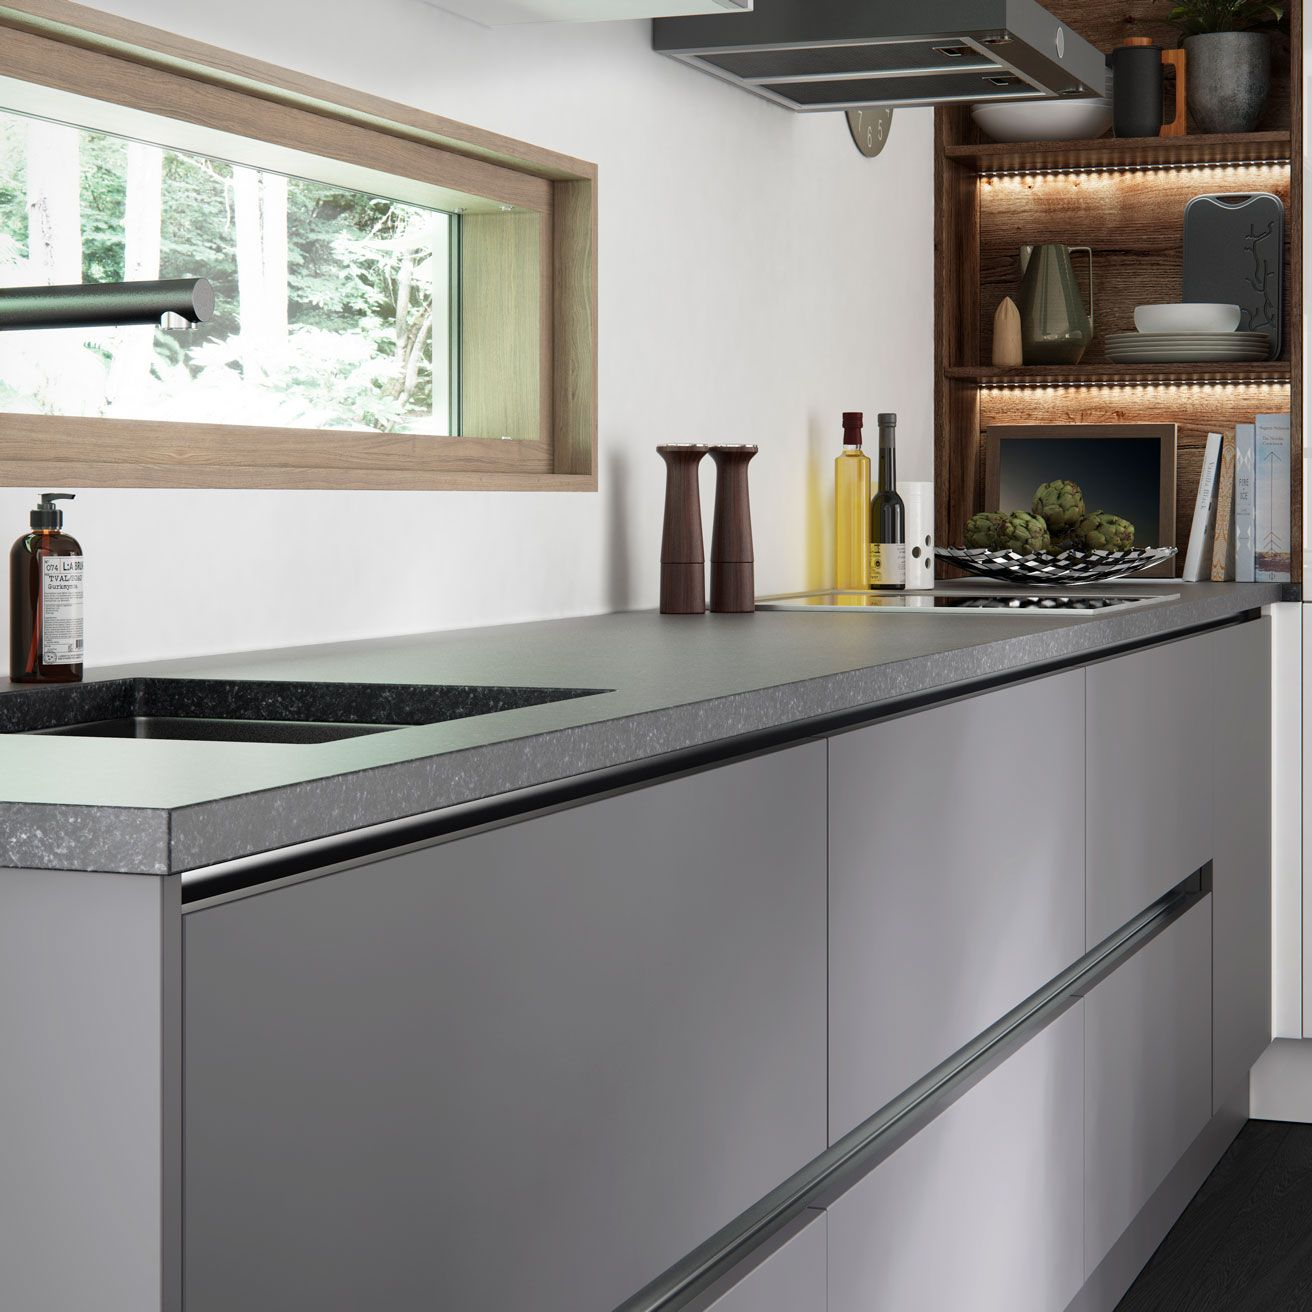 Grey kitchen modern kitchen london by lwk kitchens london - Super Matt Grey Kitchen Units Add An Ultra Modern Feel Illuminating The Handle Recesses Looks